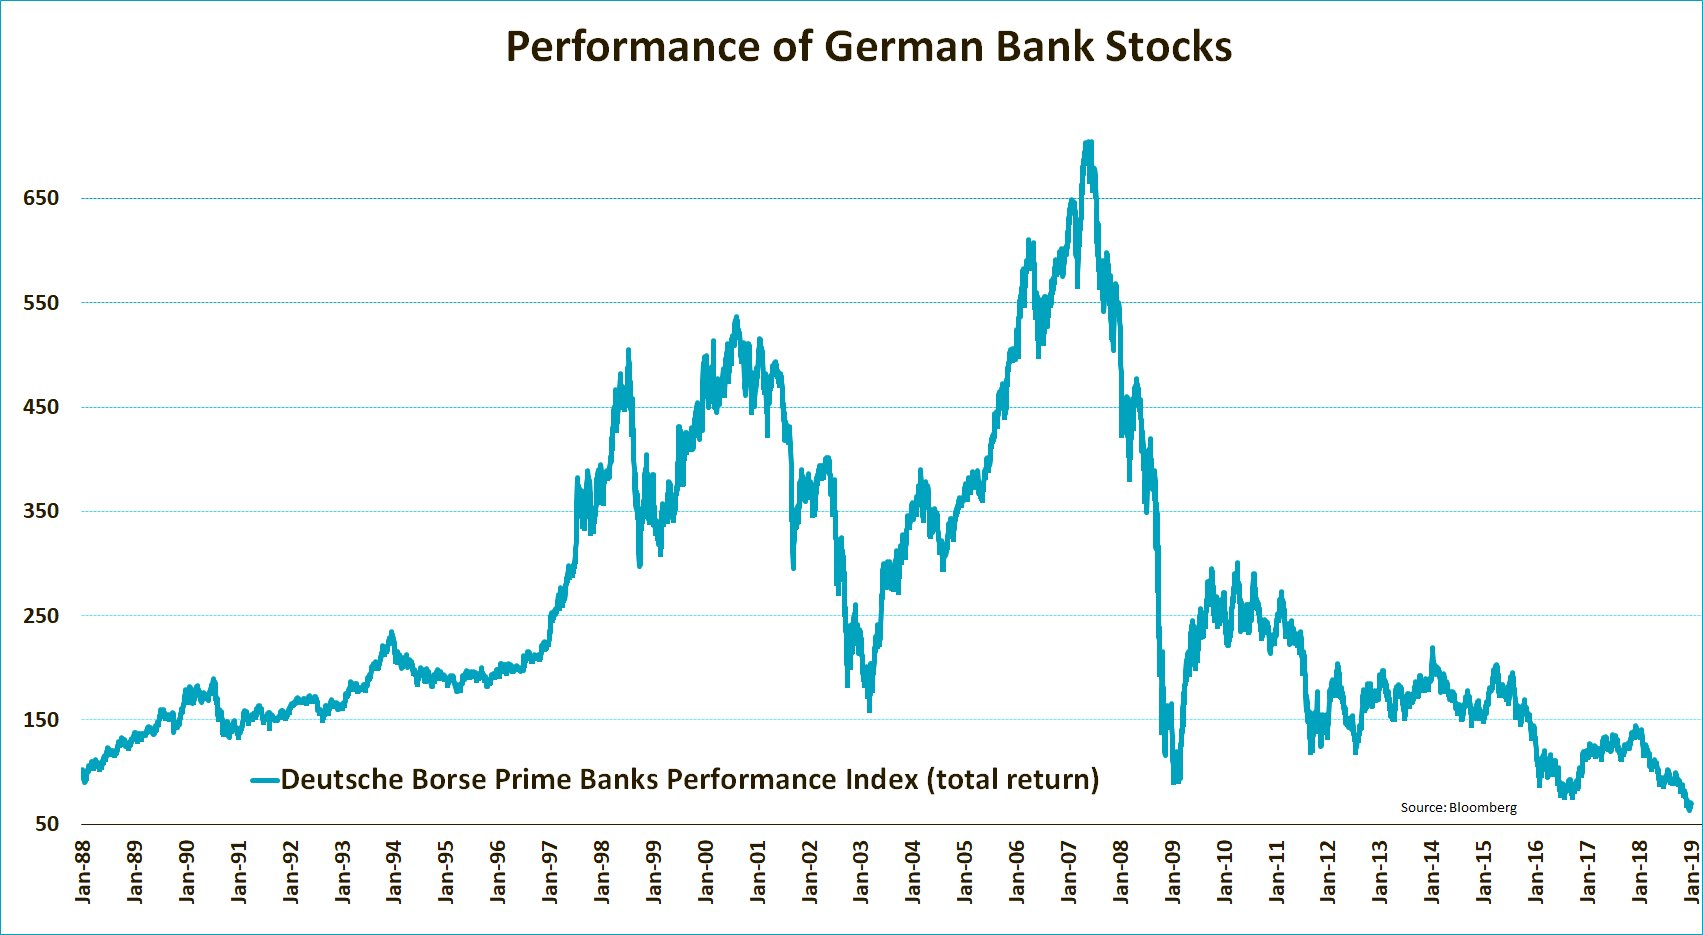 banken_deutschland_30y-performance.jpg